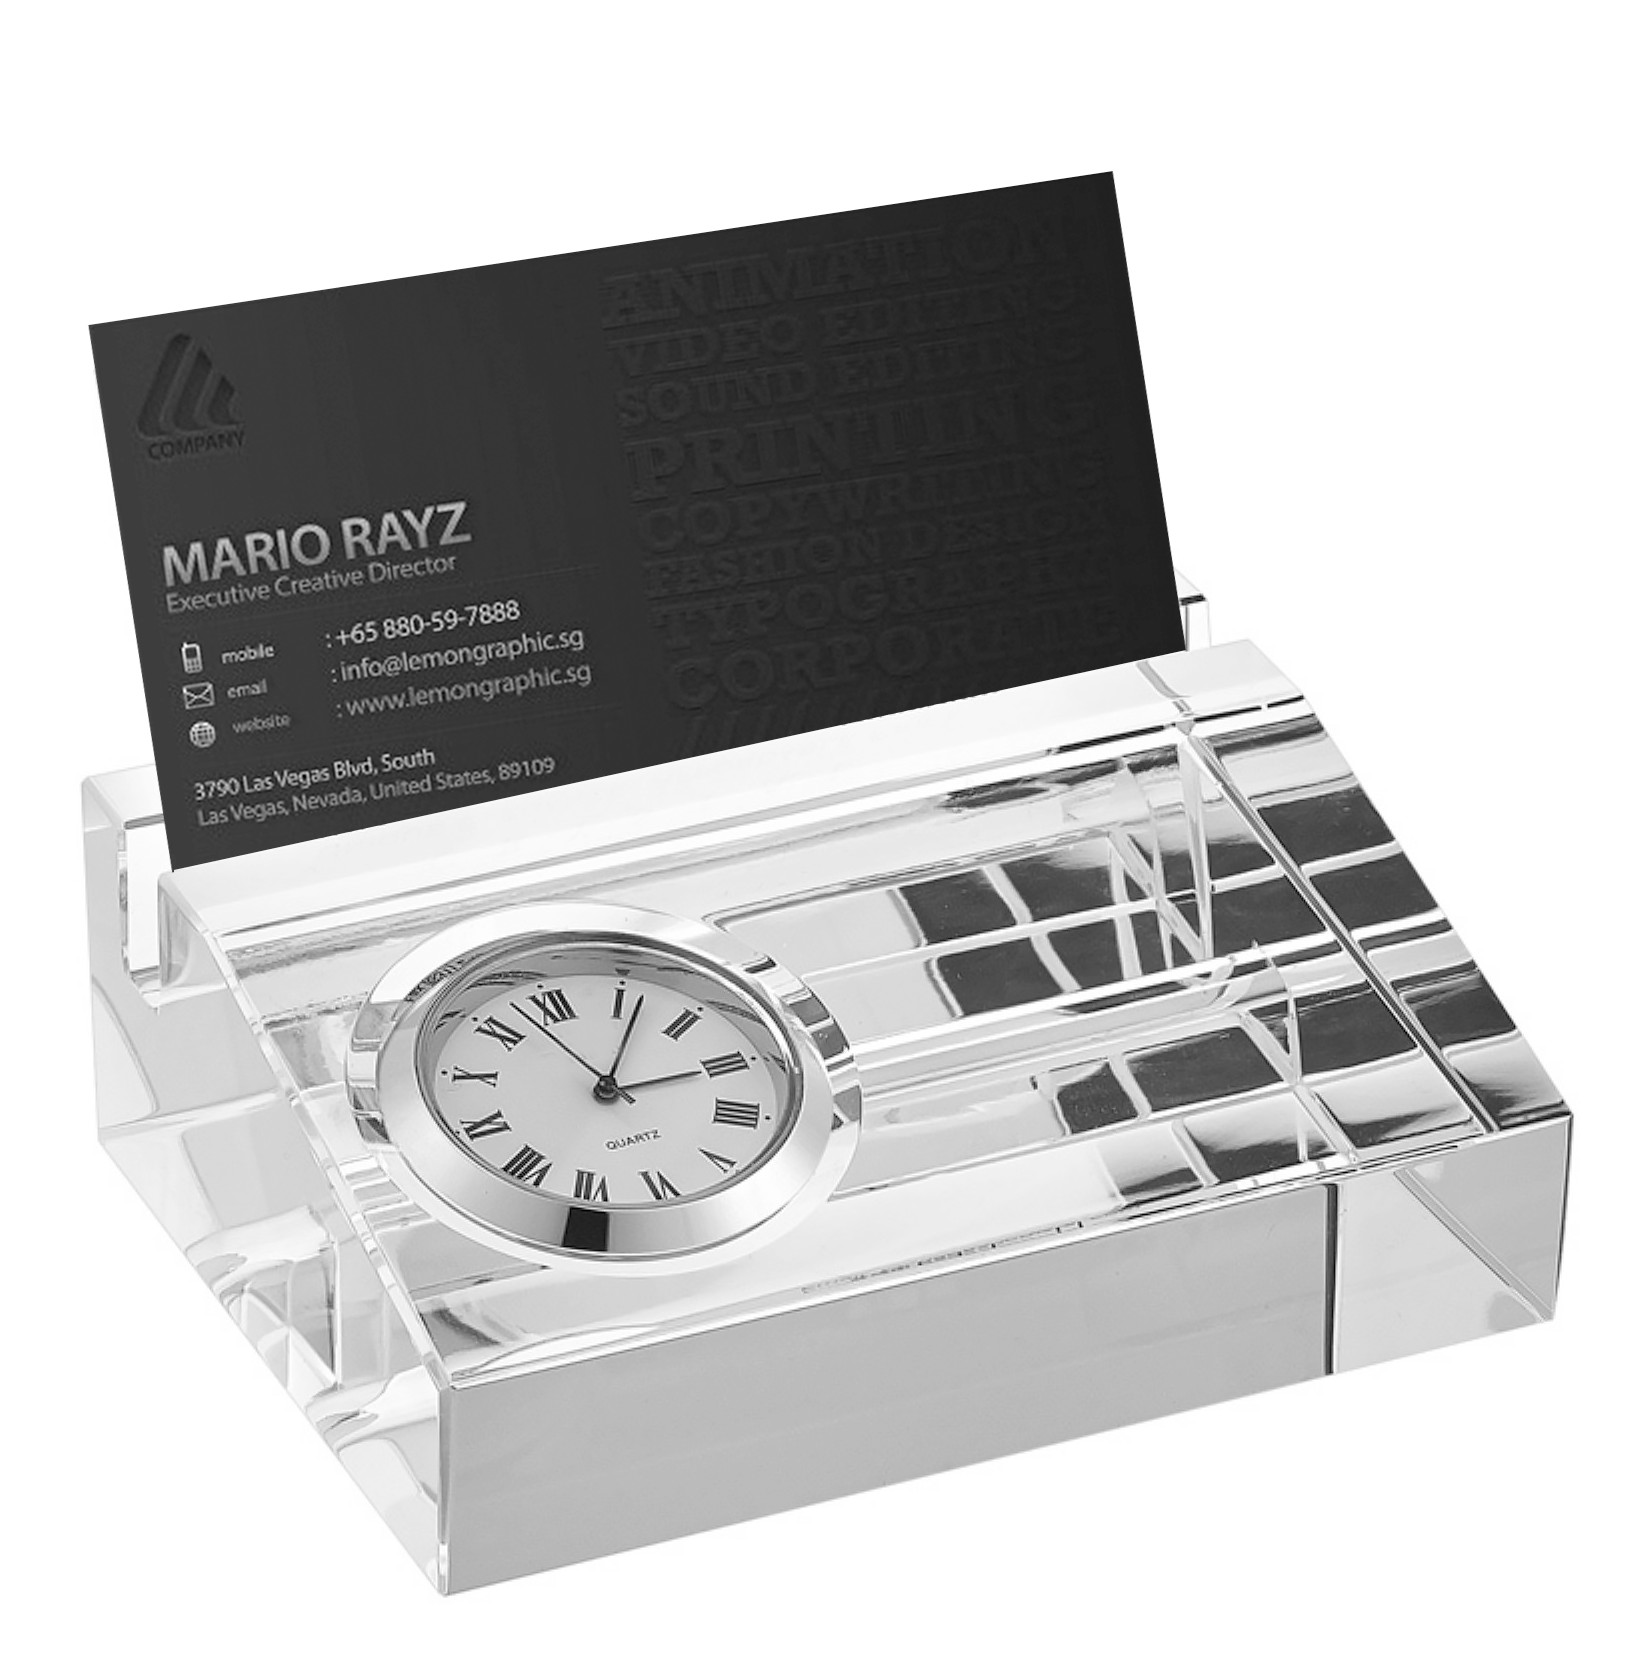 Crystal Name Plate and Desktop Clock Business Card Holder